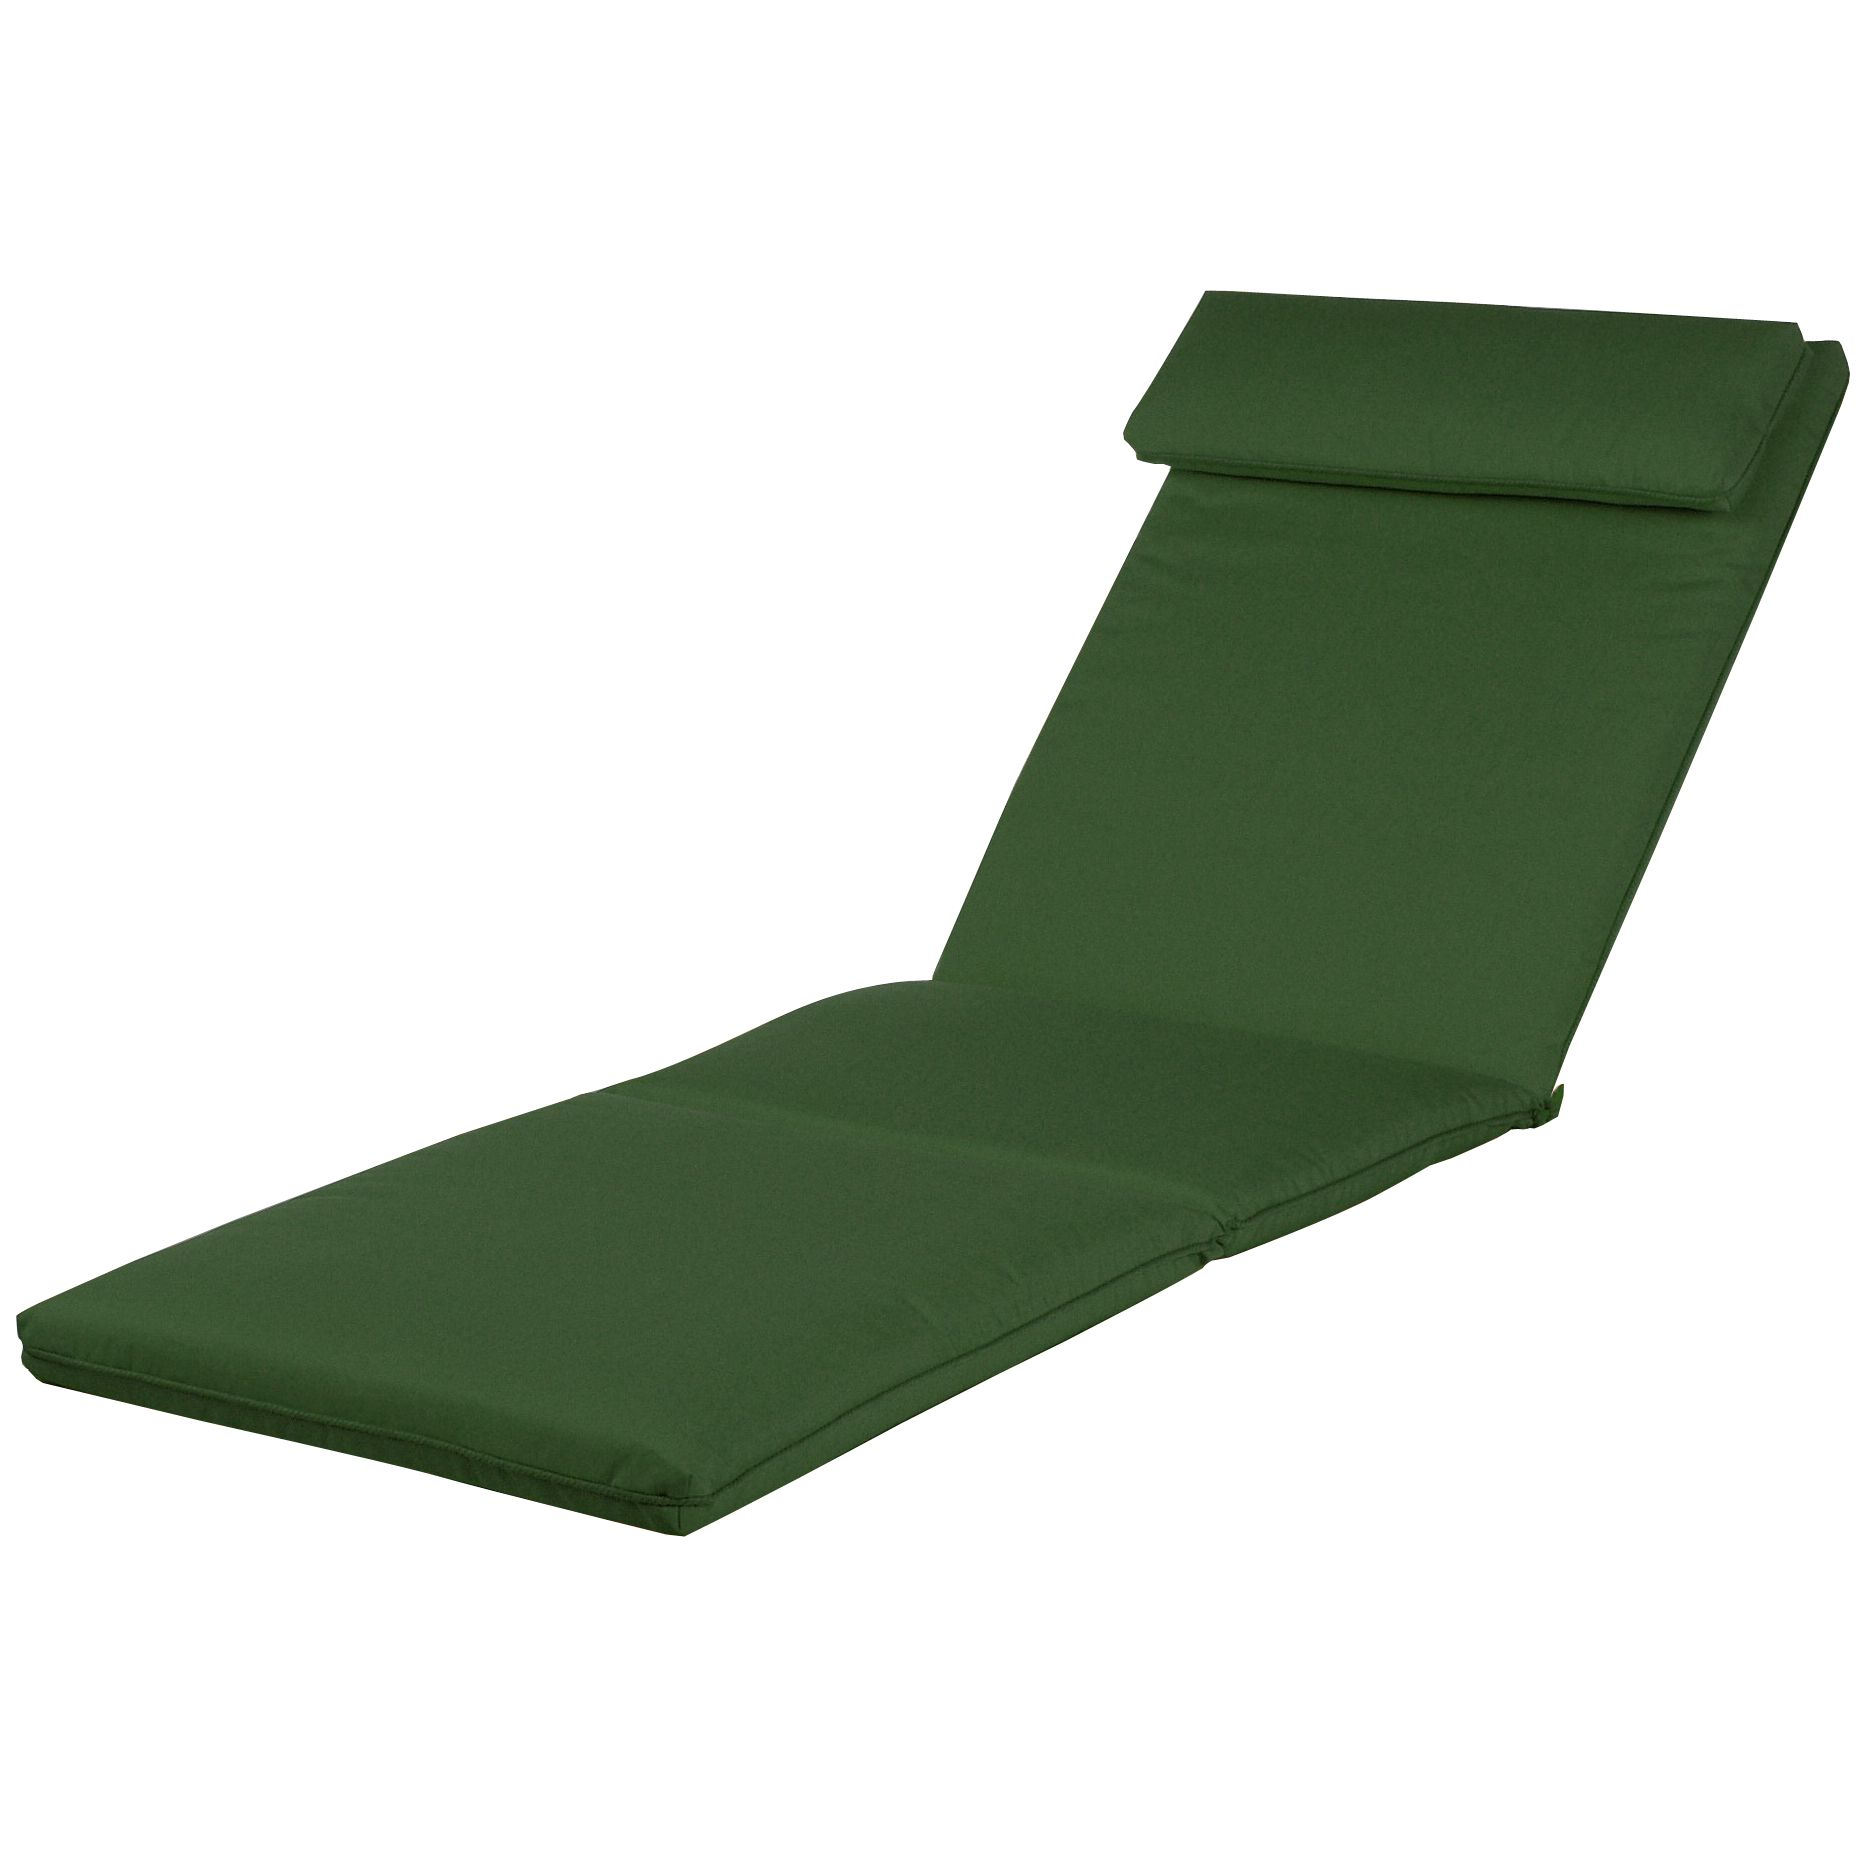 Barlow Tyrie Lounger Cushion, Forest Green